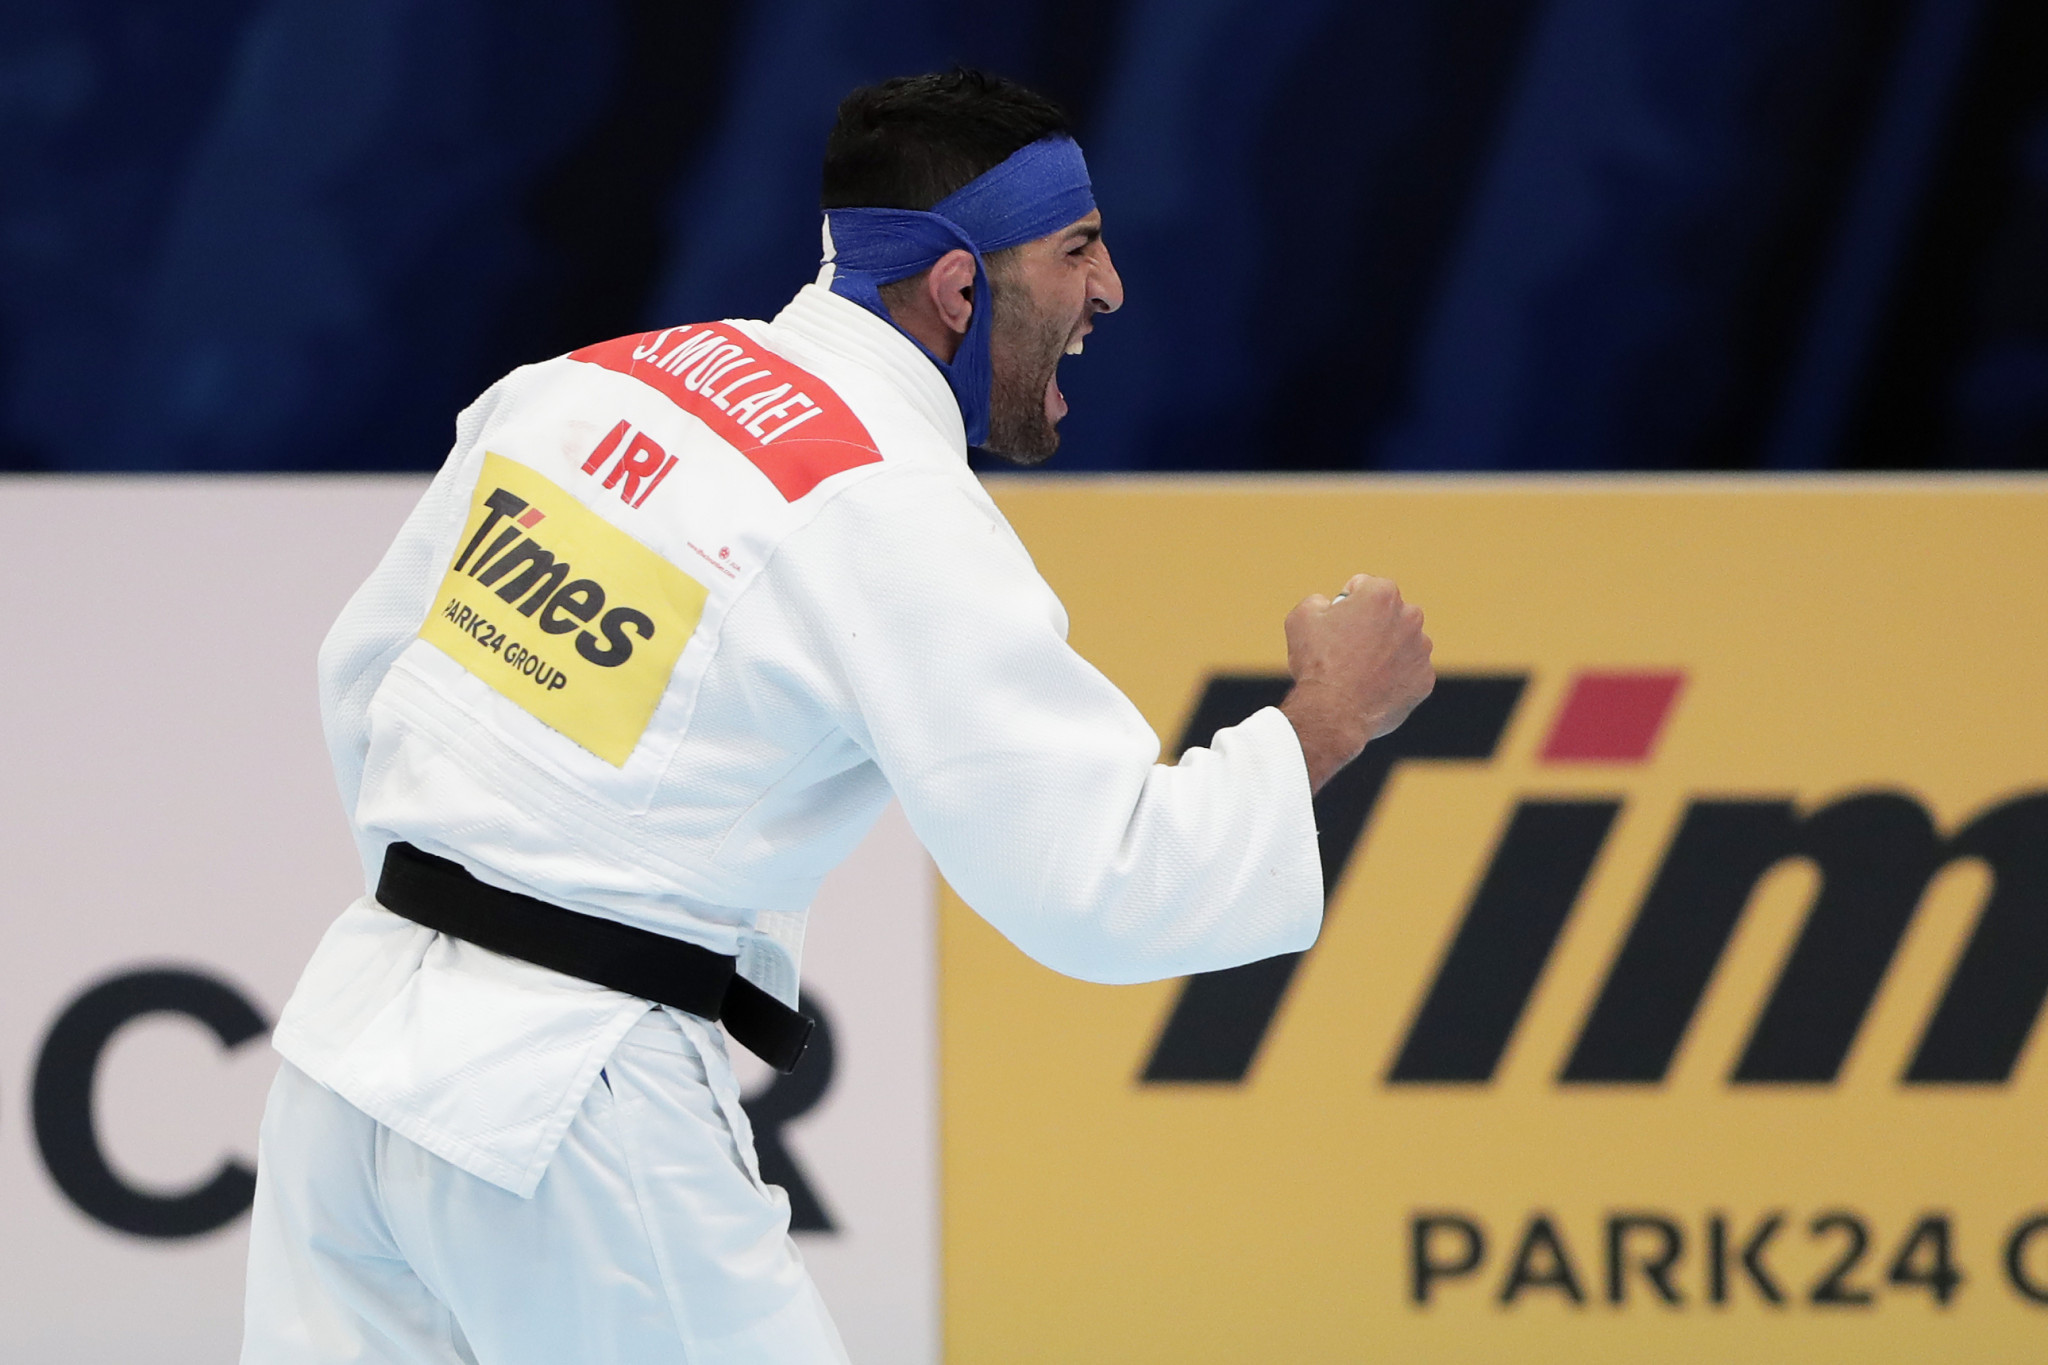 Saeid Mollaei was ordered to withdraw from the Judo World Championships in August to avoid facing an Israeli ©Getty Images